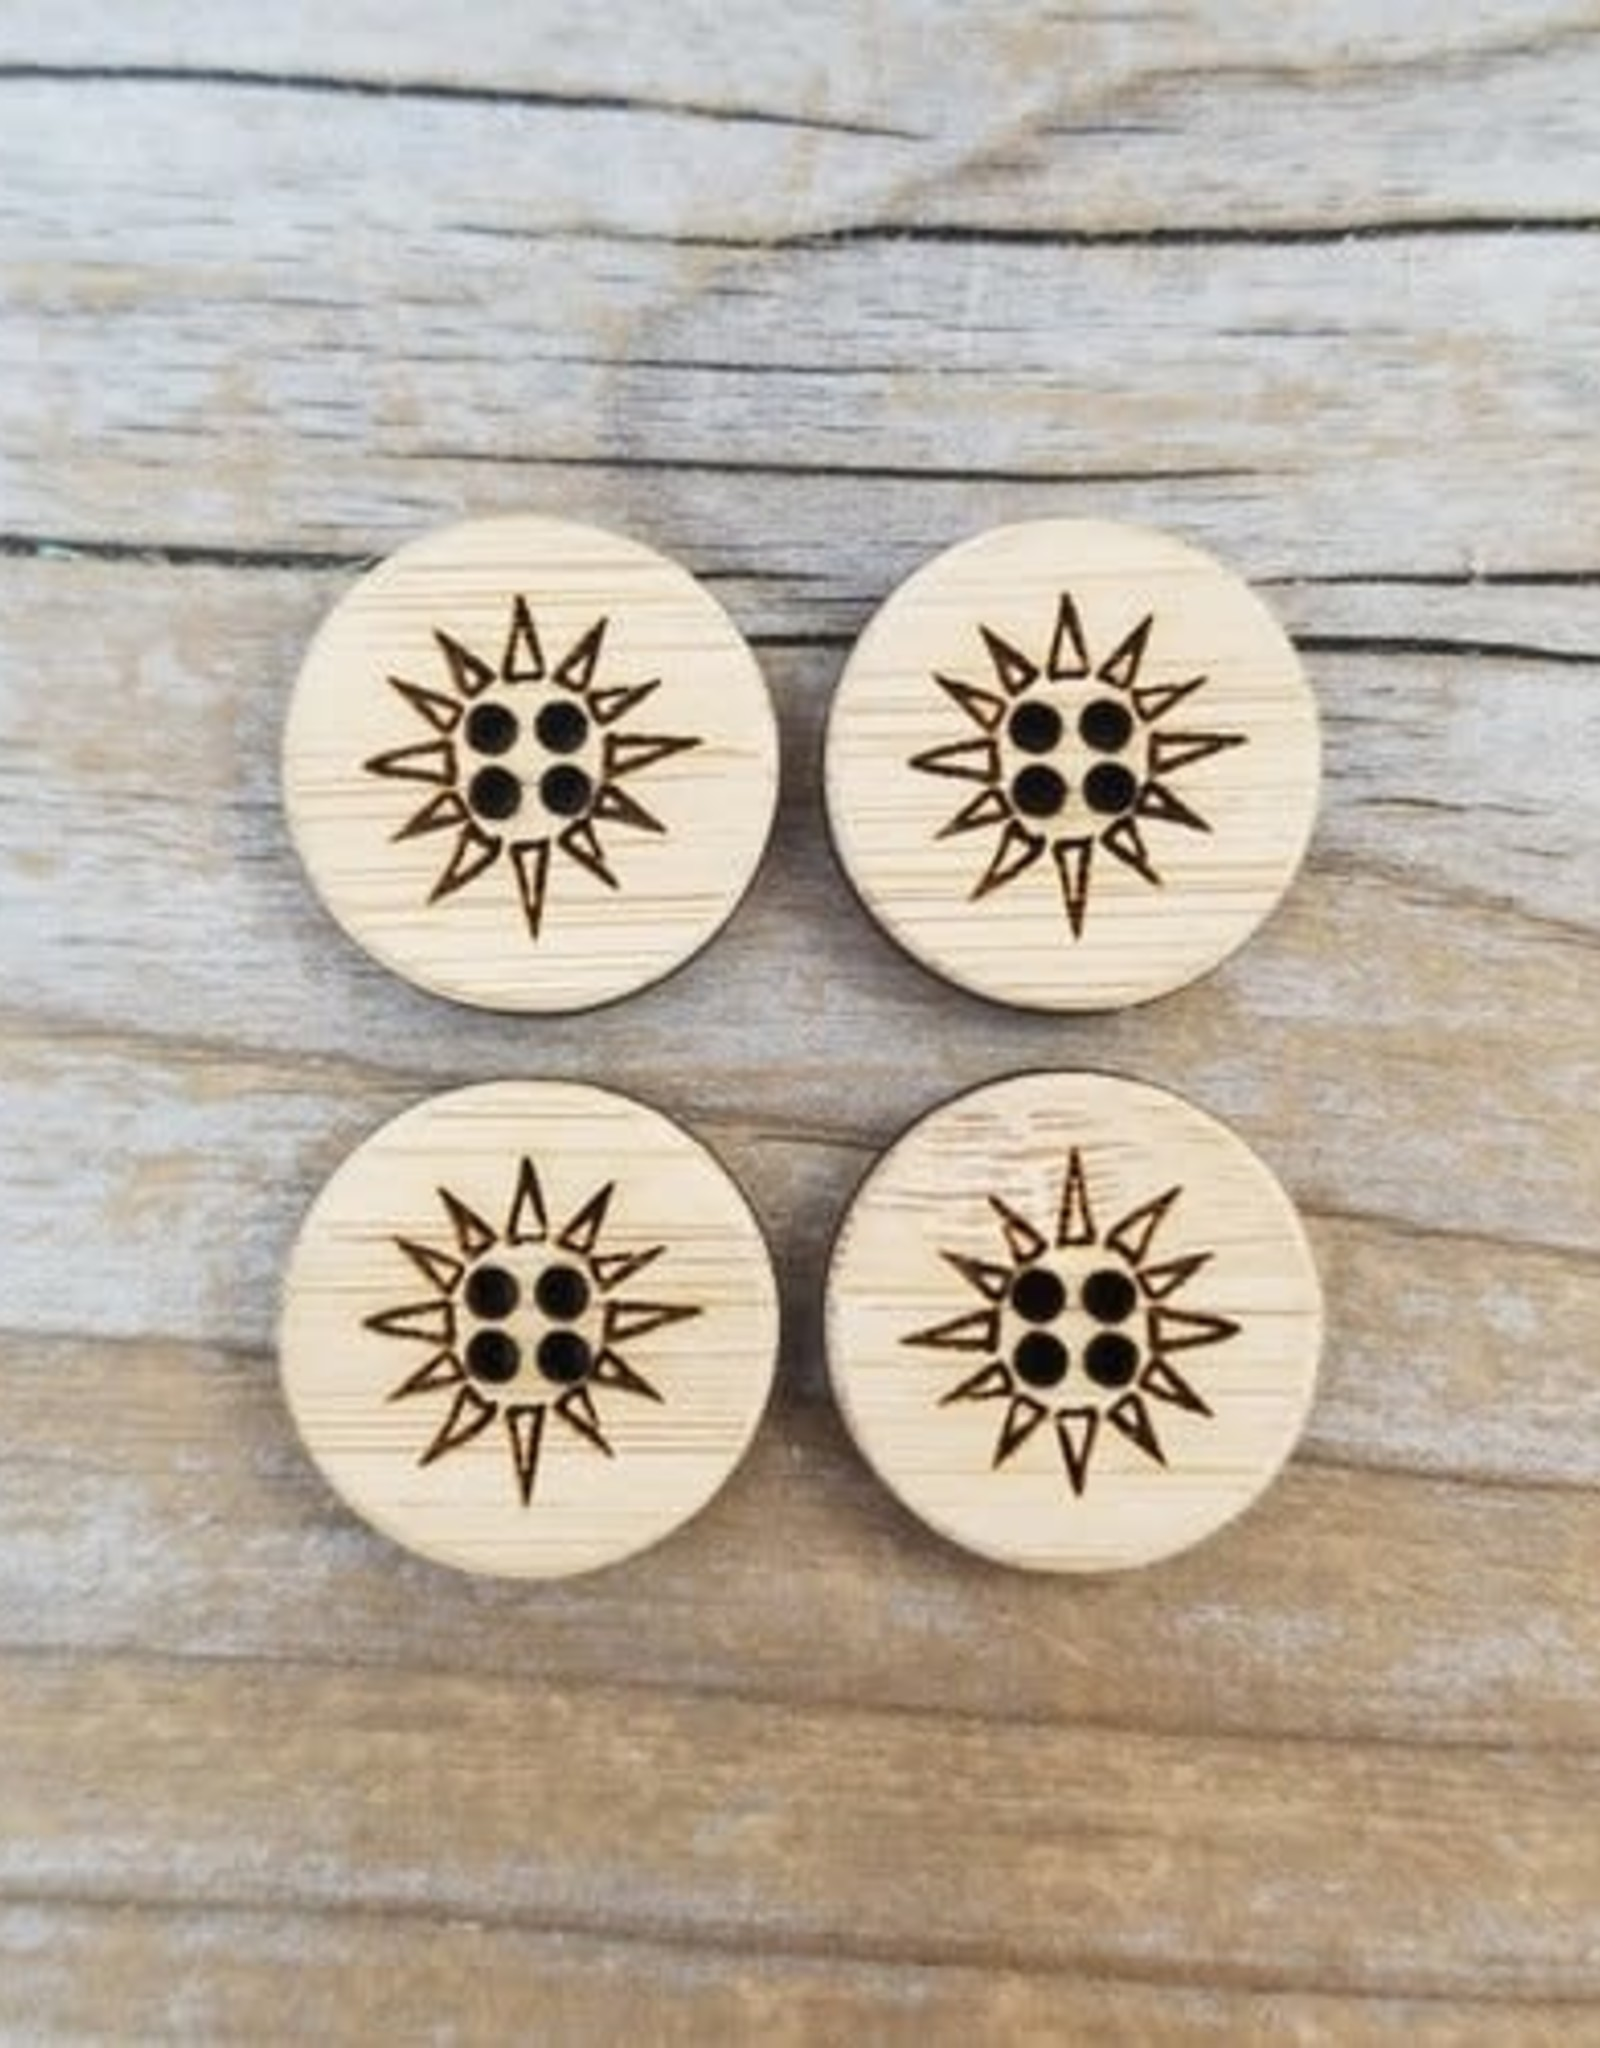 Katrinkles Buttons & Tools Sunburst Buttons - Card of 4 - 1""